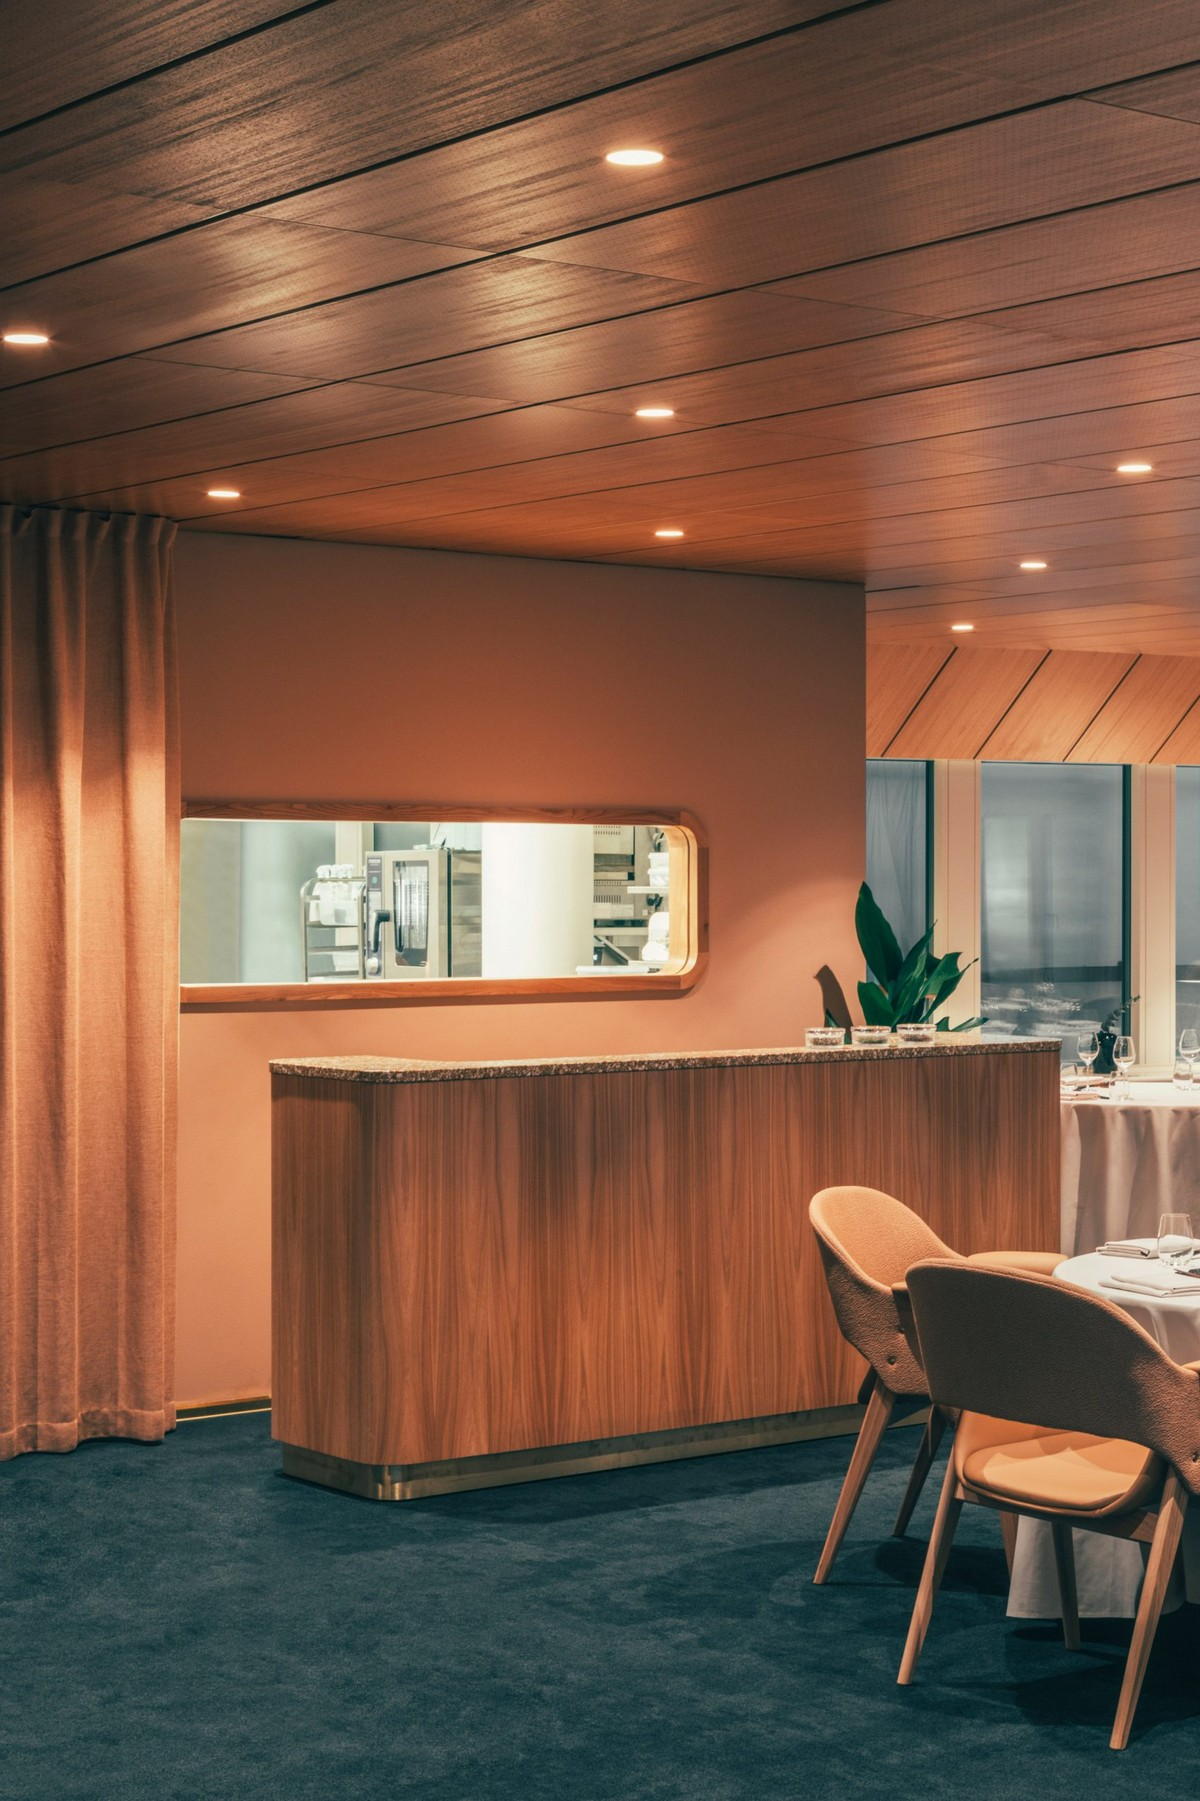 A Restaurant in Helsinki has a New Mid-Century Look | The Note Design Studio, based in Stockholm, renovated a Helsinki restaurant with beautiful pink combinations and a color scheme that truly honors the building's features. #colortrends #interiordesign #centertables #midcentury #midenturydesign